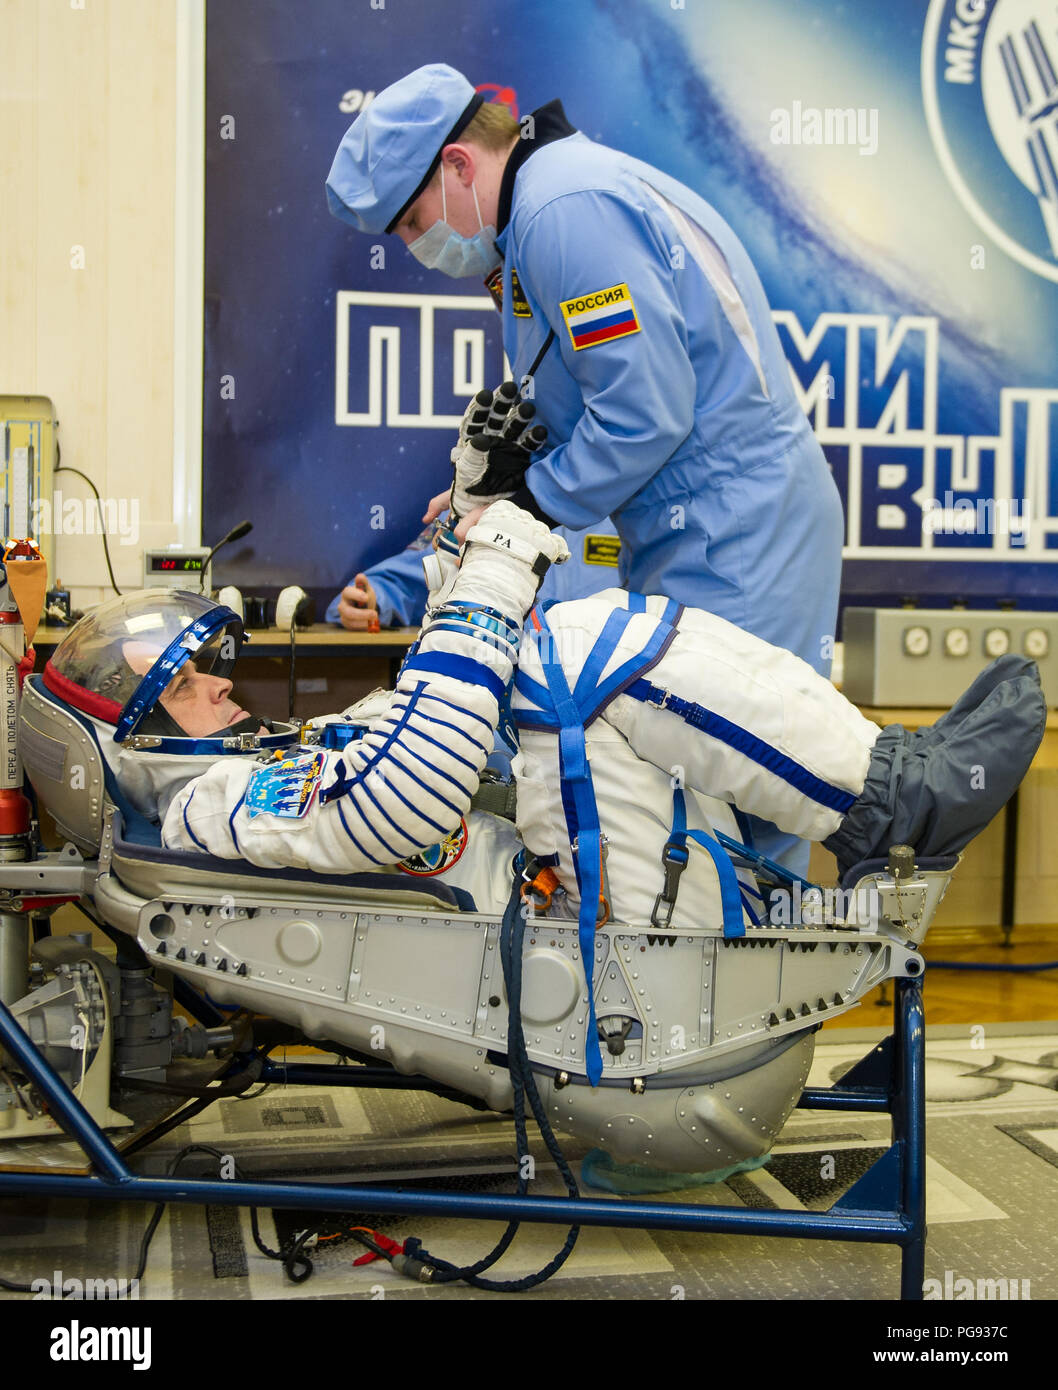 Expedition 55 flight engineer Ricky Arnold of NASA prepares to have his Russian Sokol suit pressure checked in preparation for launch aboard the Soyuz MS-08 spacecraft, Wednesday, March 21, 2018 at the Baikonur Cosmodrome  Kazakhstan. Arnold, Soyuz Commander Oleg Artemyev of Roscosmos, and flight engineer Drew Feustel of NASA launched aboard the Soyuz MS-08 spacecraft at 1:44 p.m. Eastern time (11:44 p.m. Baikonur time) on March 21 to begin their journey to the International Space Station. - Stock Image